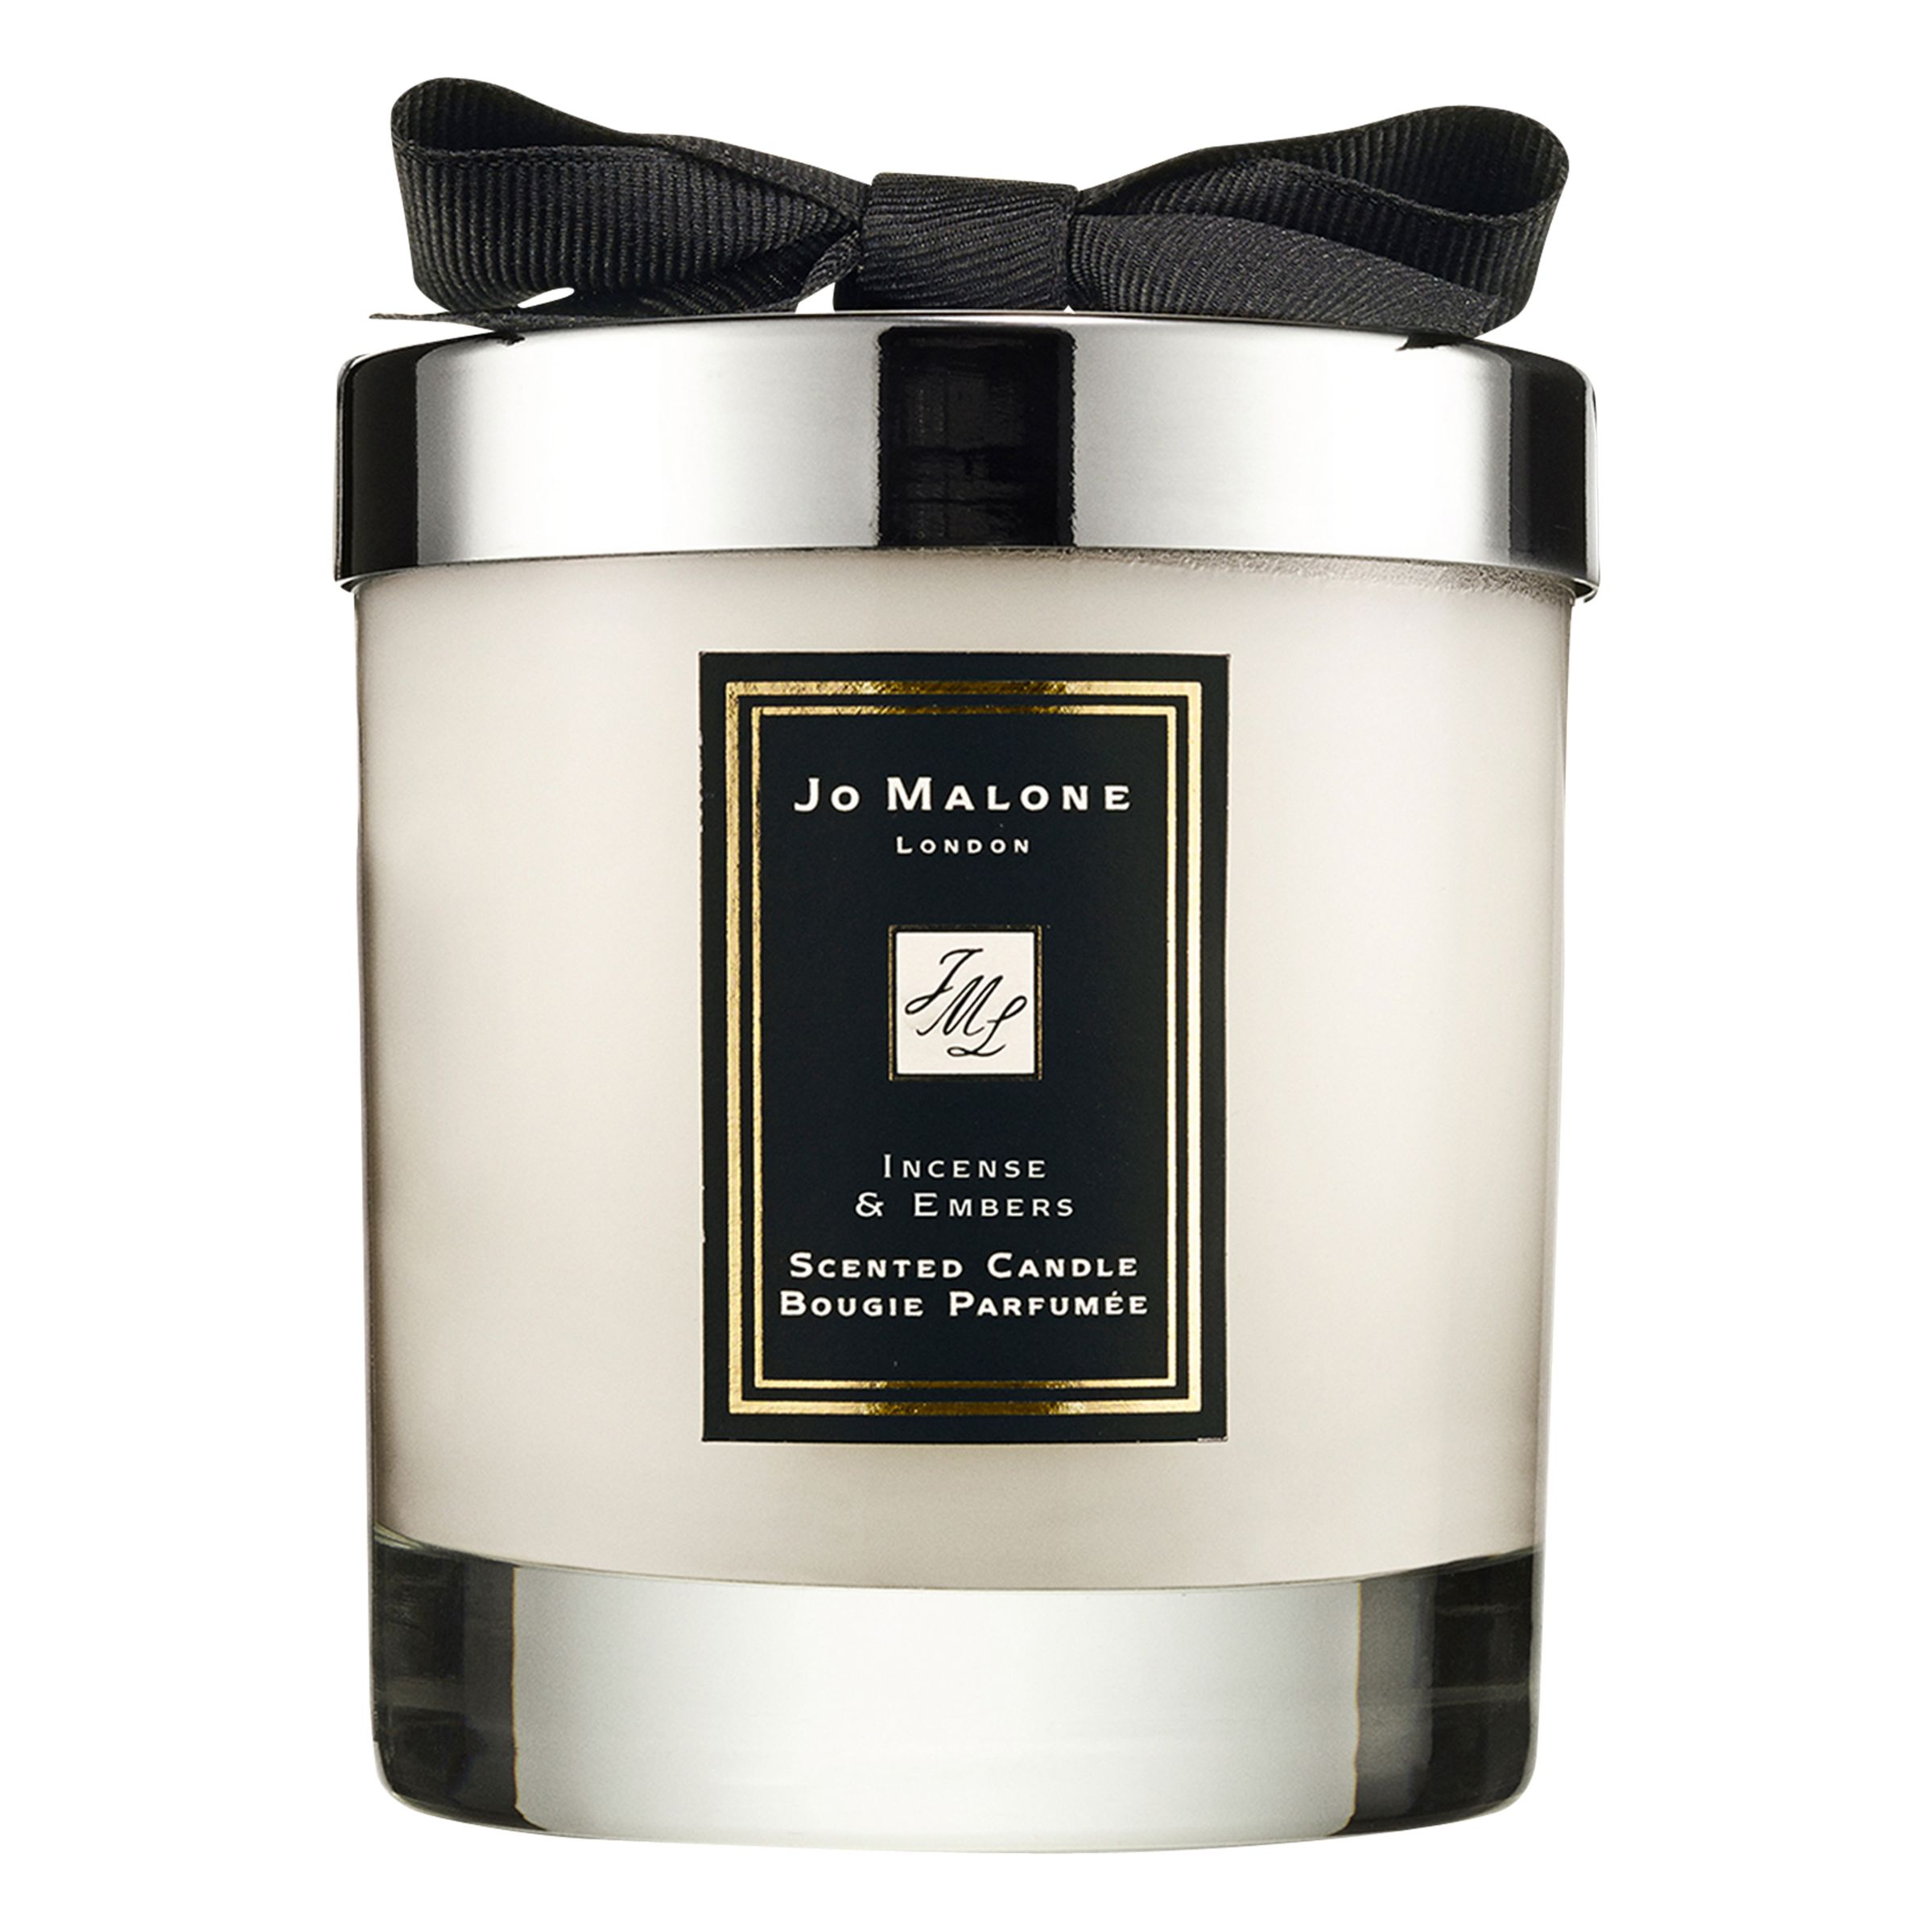 Image result for jo malone incense and embers candle